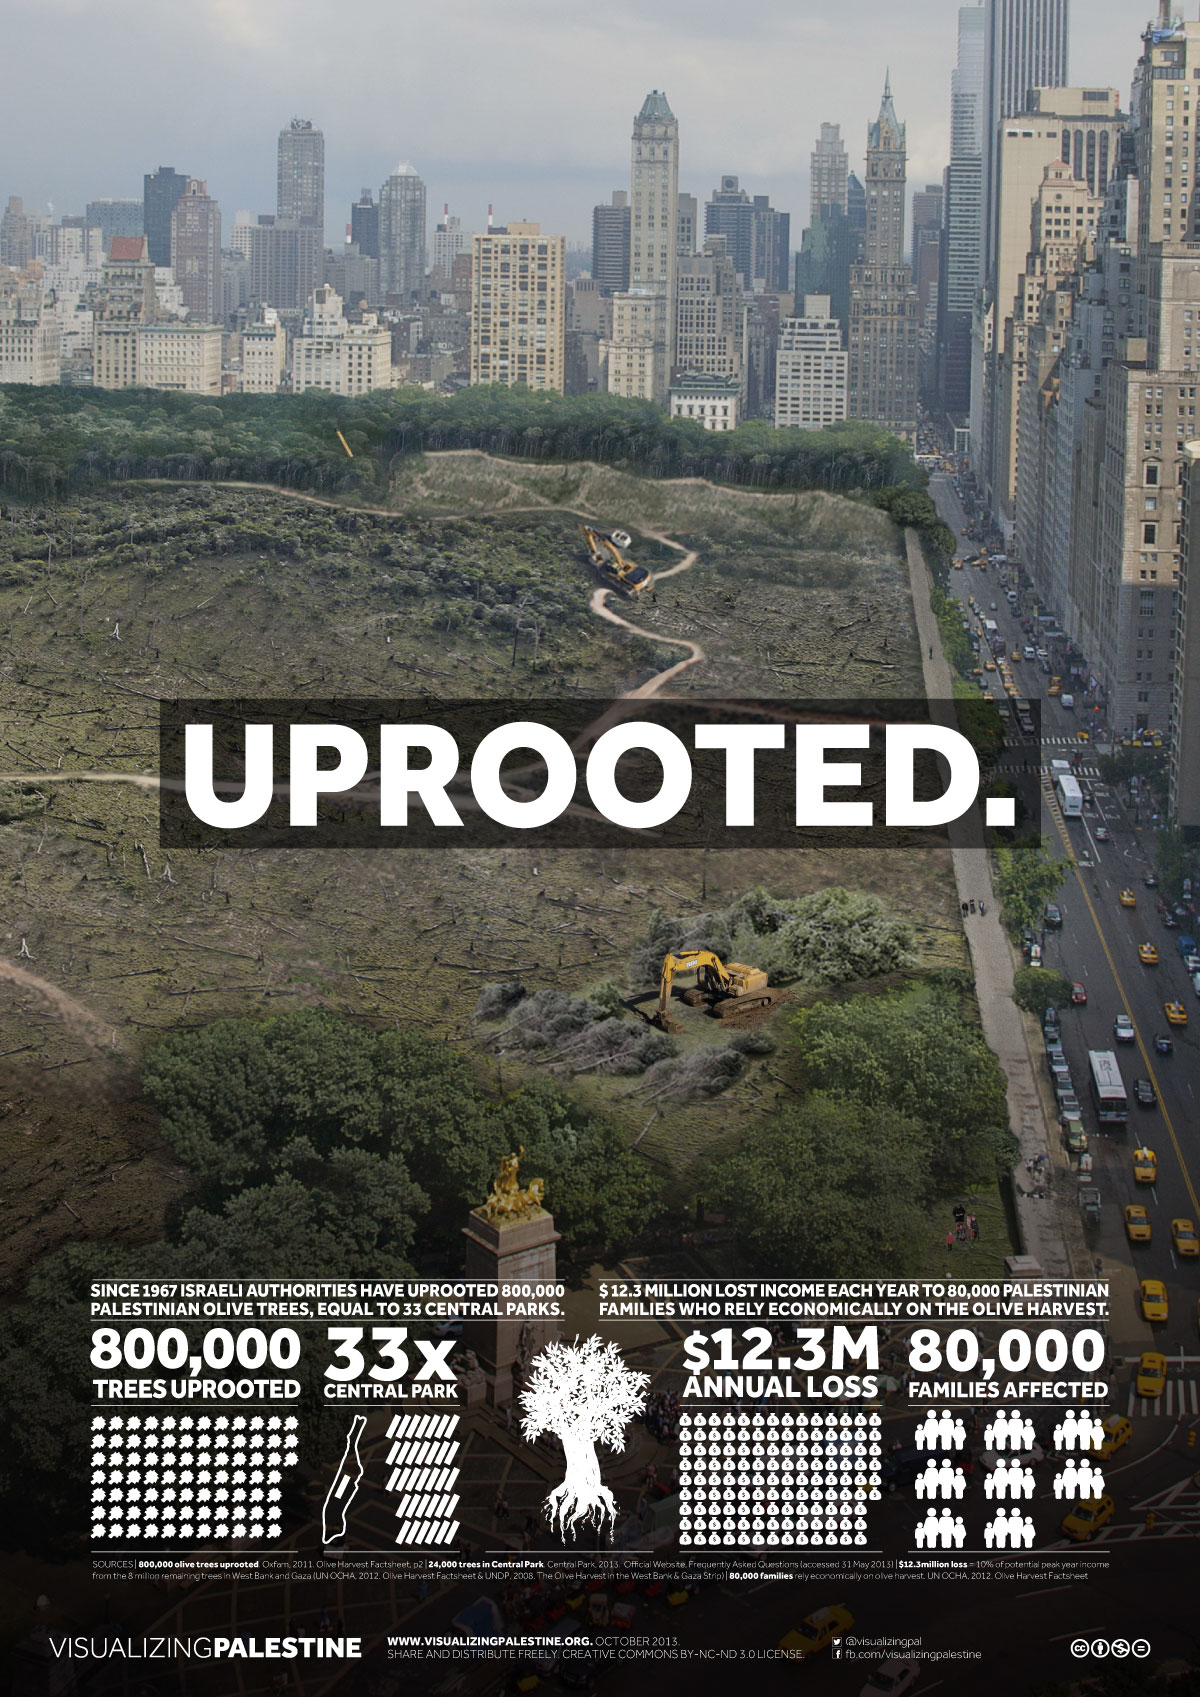 800,000 Olive Trees Uprooted, 33 Central Parks